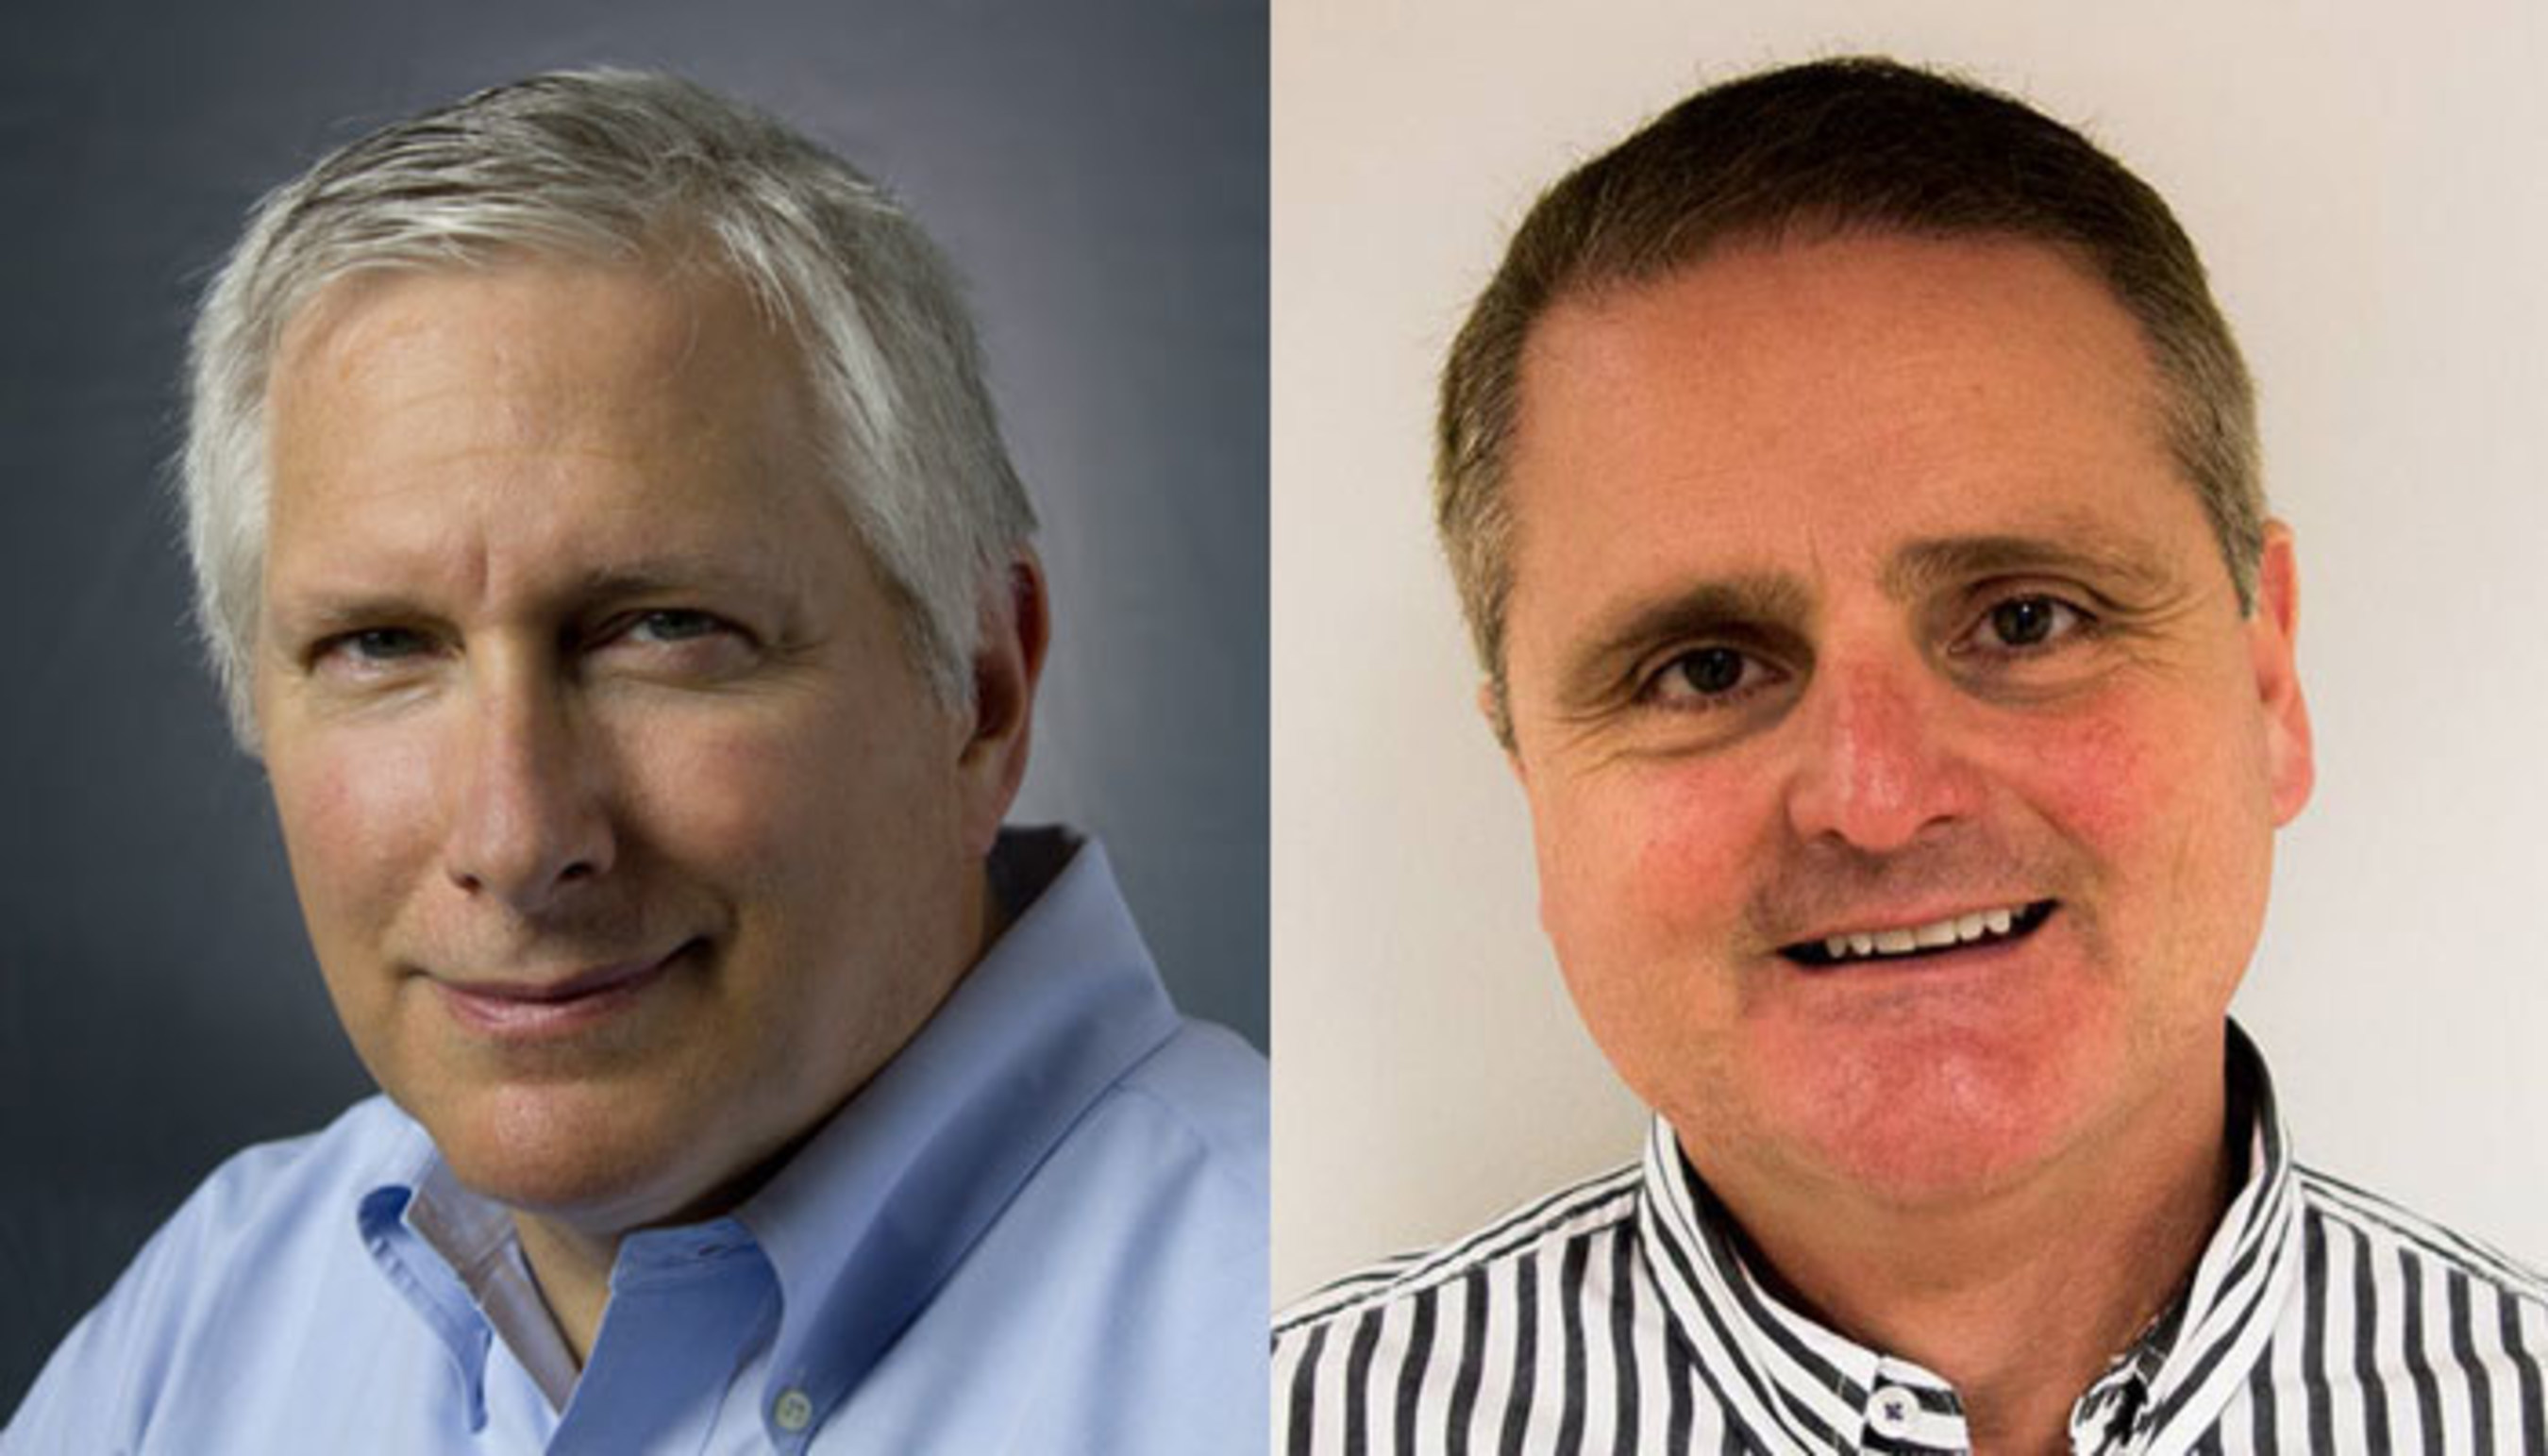 Virtuos Appoints Dan Offner as Advisor to the Board and Brian Waddle as Global President of Sales and Marketing